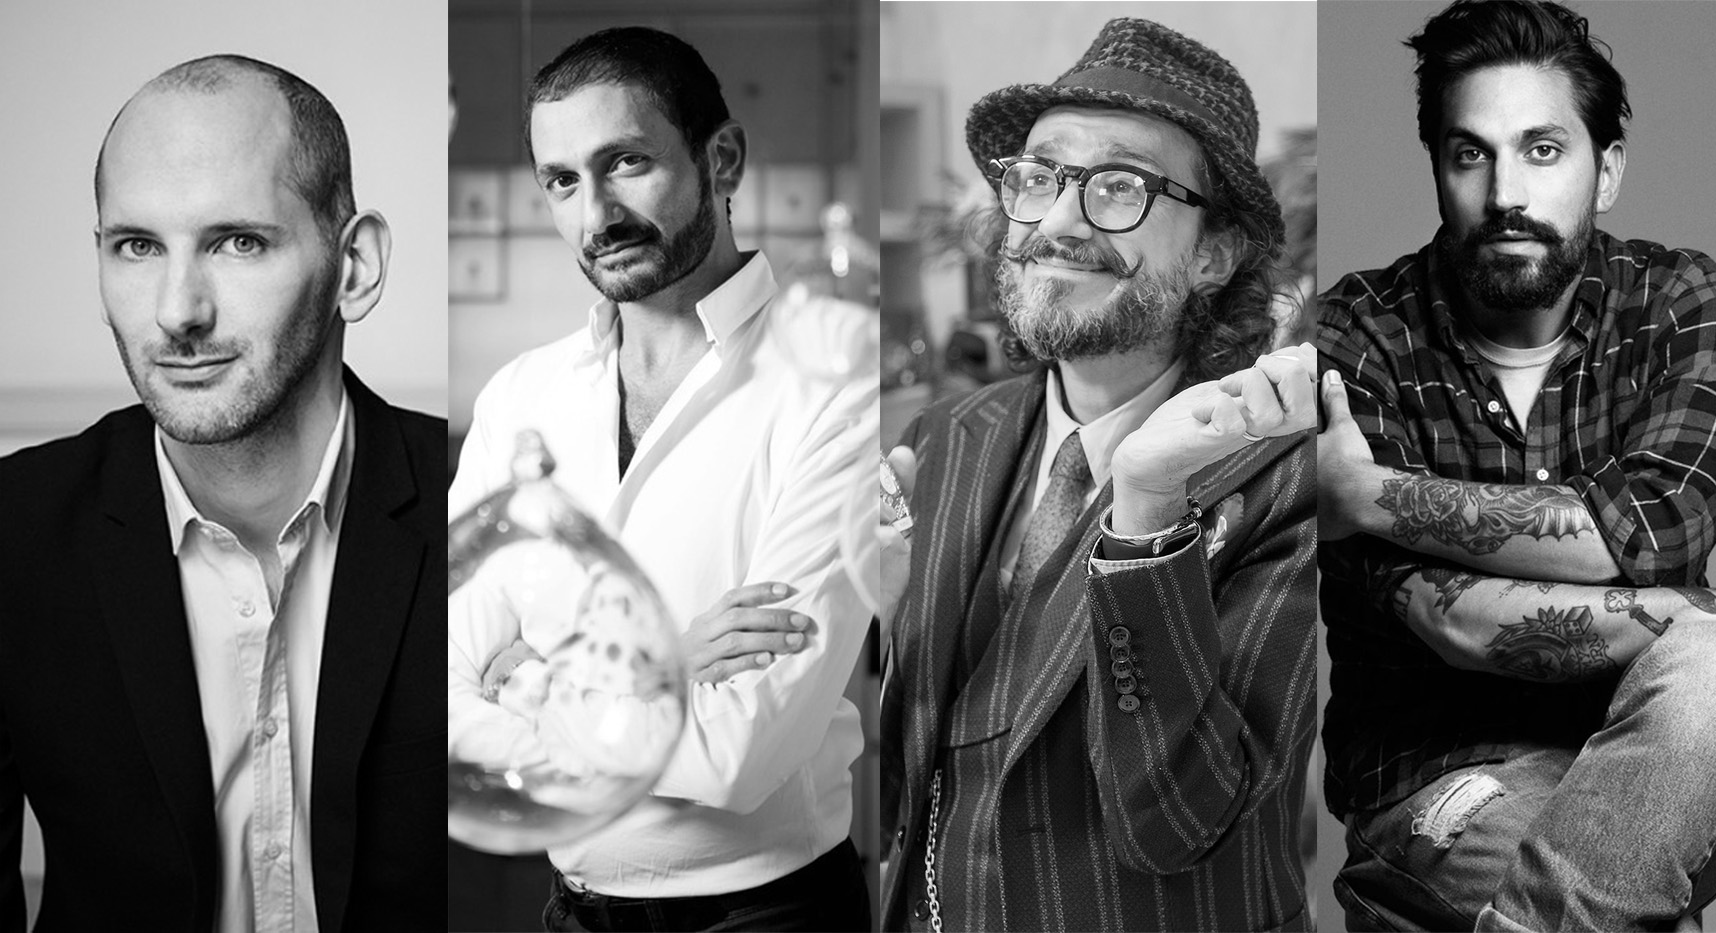 NEW ALCHEMISTS: Perfumers Quentin Bisch, Francis Kurkjian, Paolo Terenzi and Ben Gorham about the Fragrances of the Future